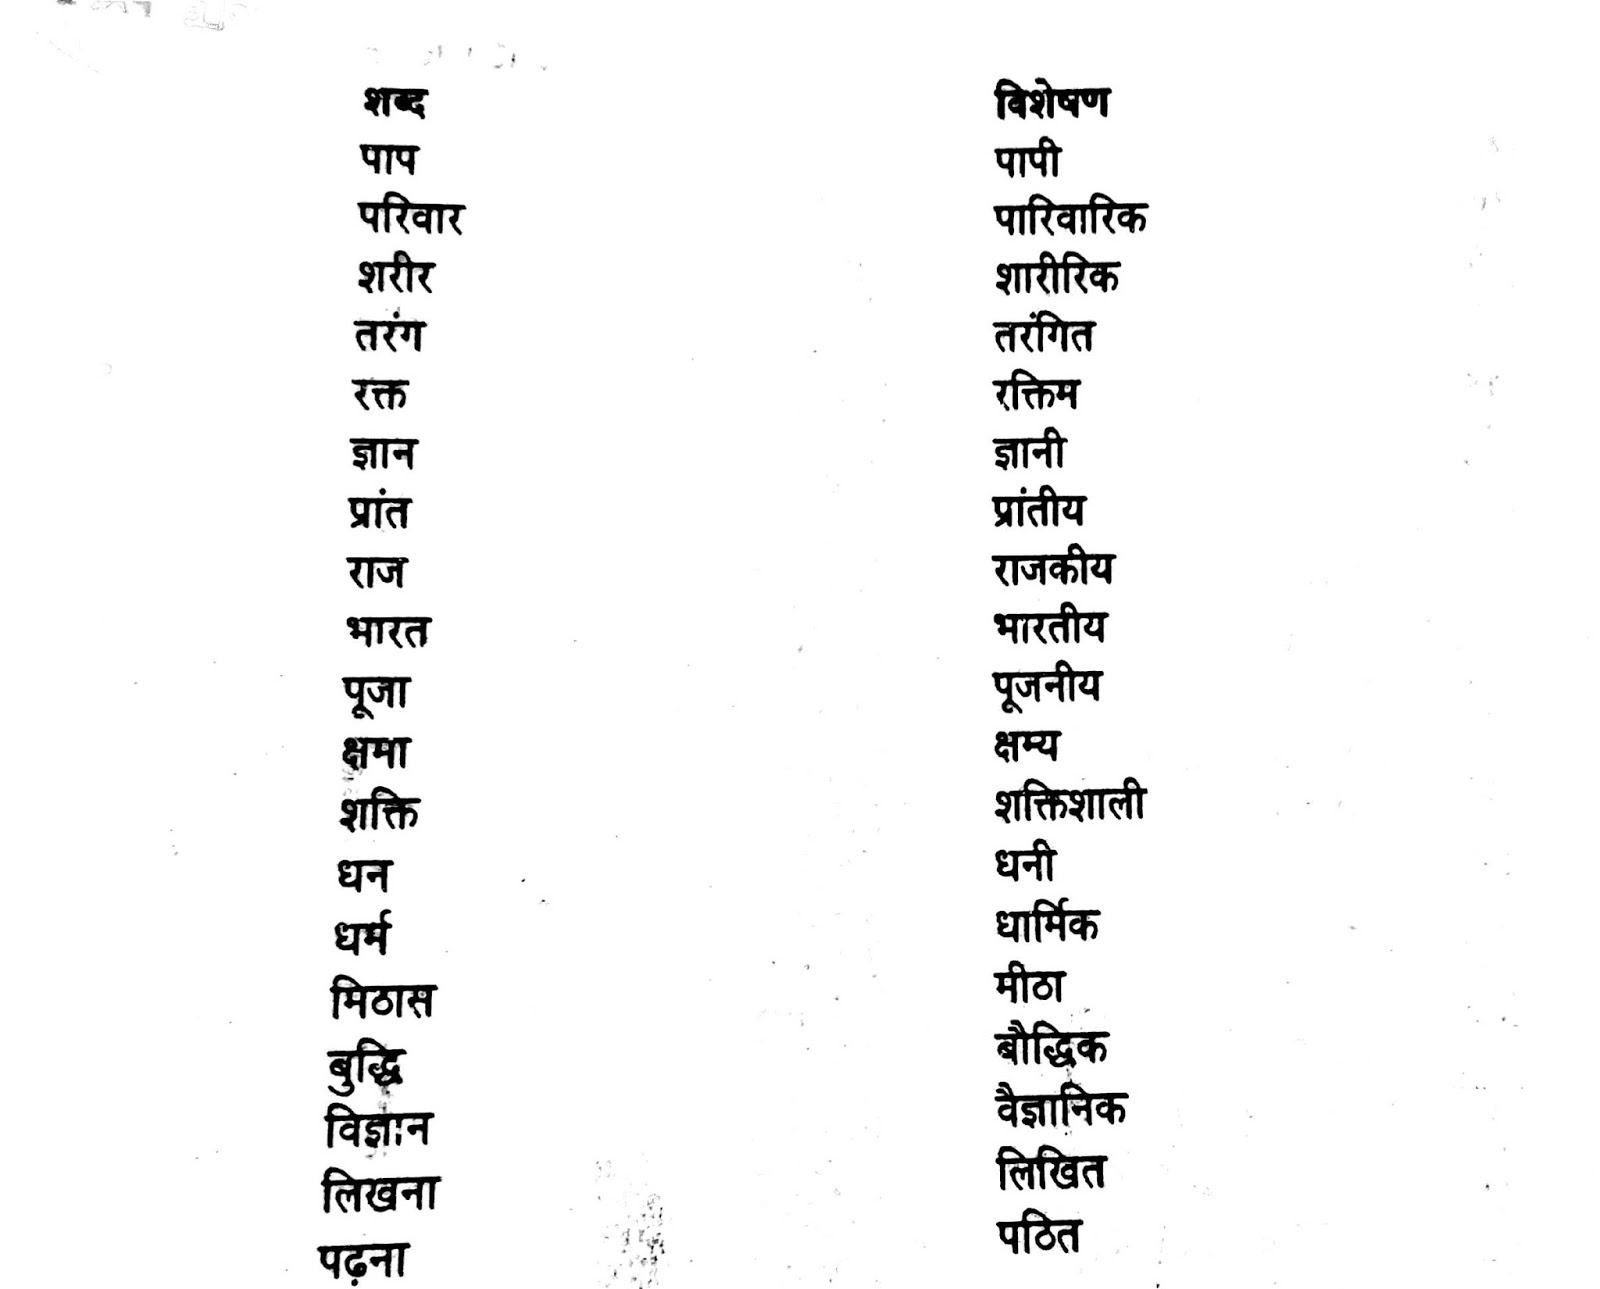 Hindi Grammar Work Sheet Collection For Classes 5 6 7 Amp 8 Collection Of Adjectives Abstract